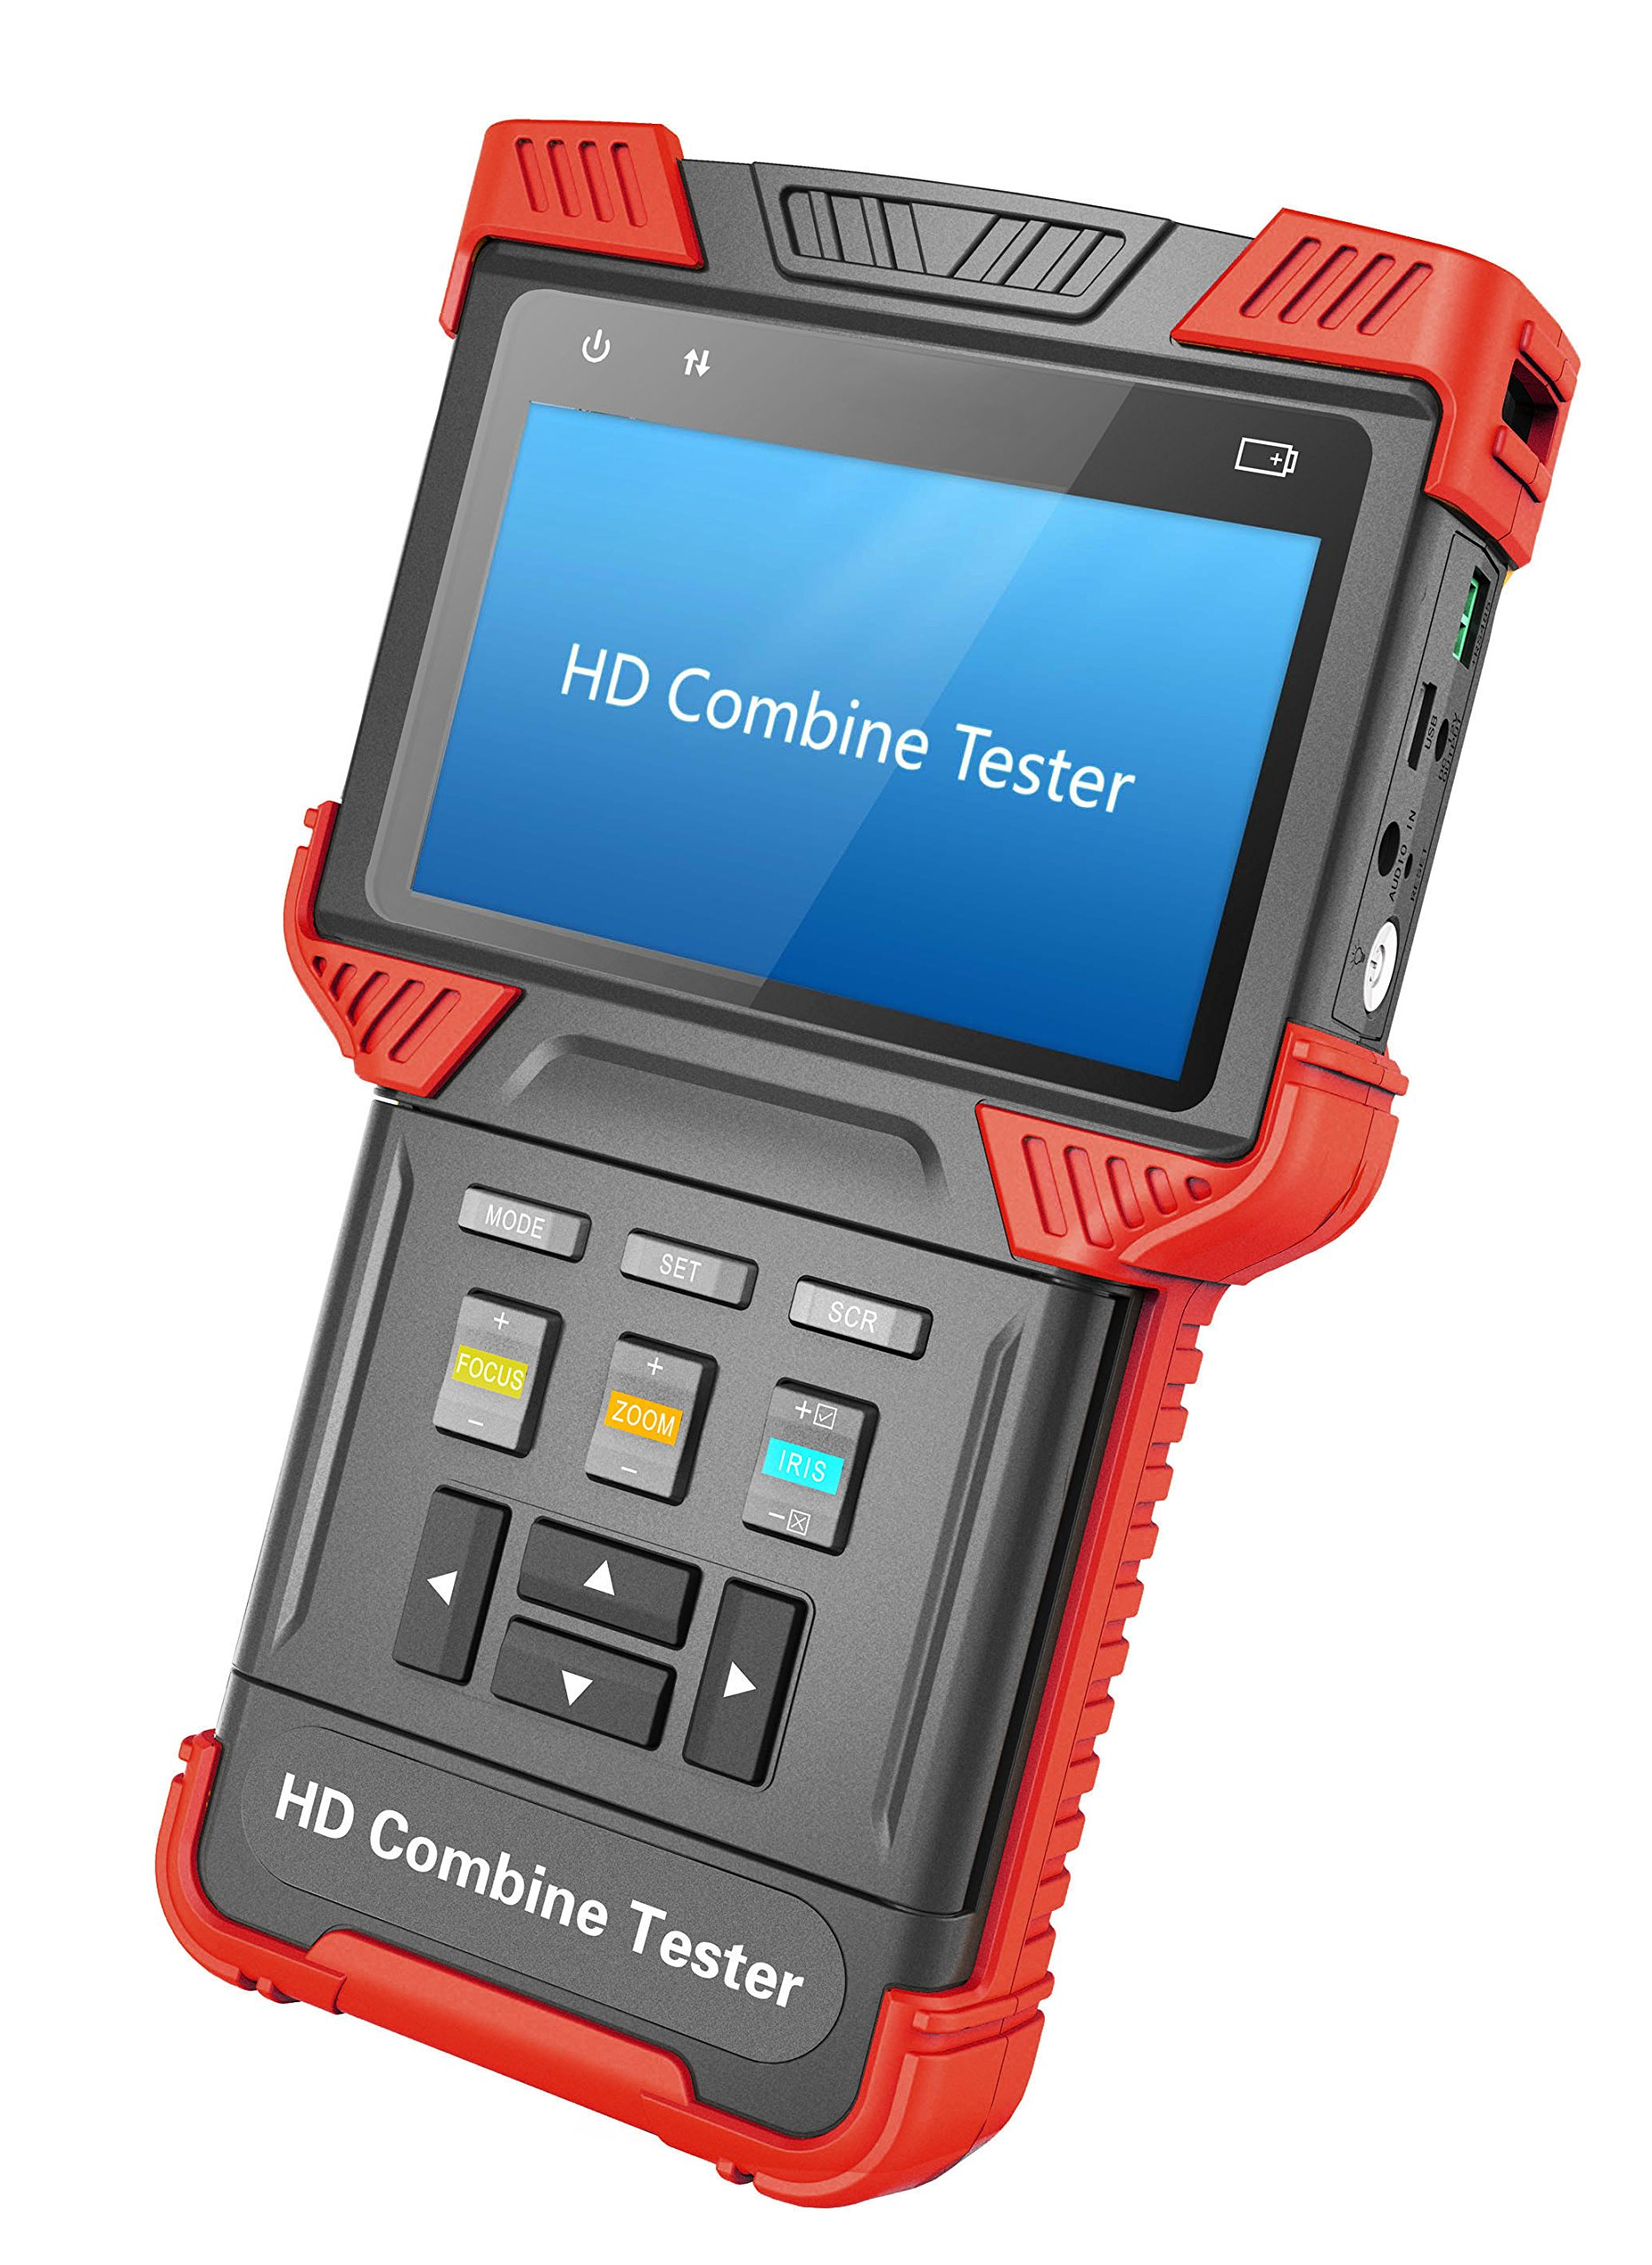 CCTV Tester AHD + IPC + TDR +POE+ Analog Camera Tester 4.0-inch Handheld Multi-function Security Tester Support 1080P(T62-AHD)